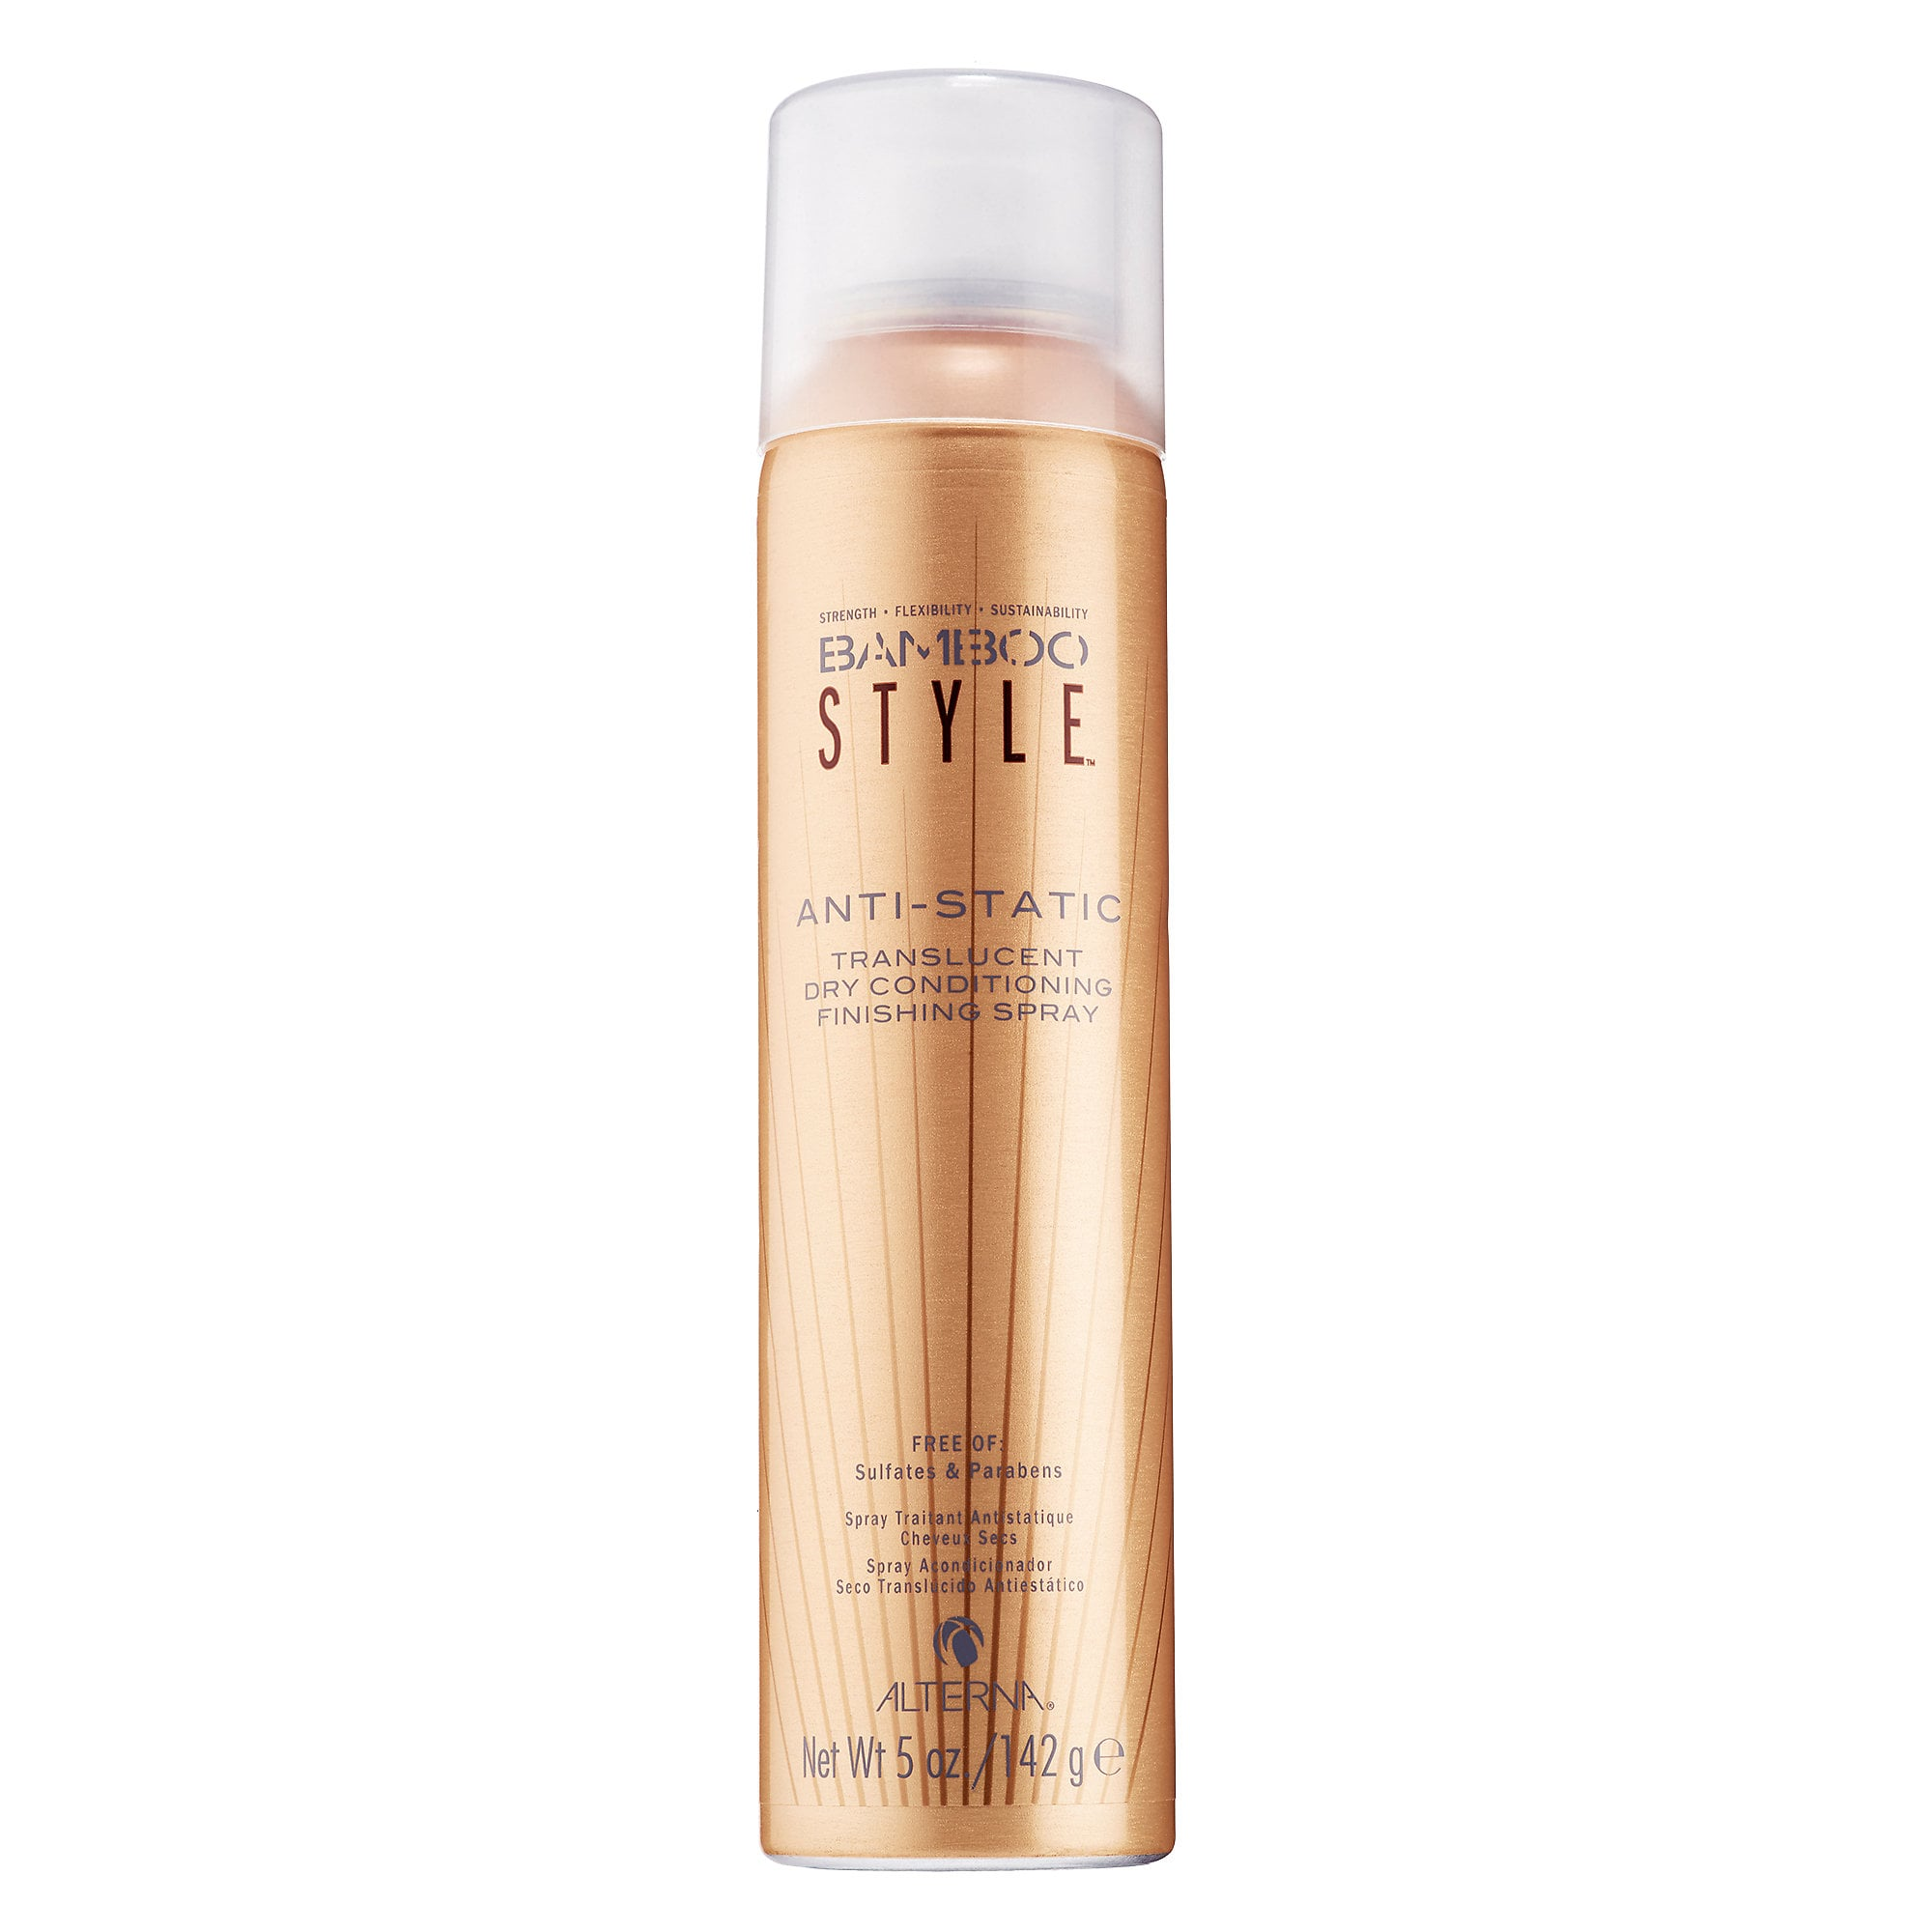 Bamboo Style Anti-Static Translucent Dry Conditioning Finishing Spray